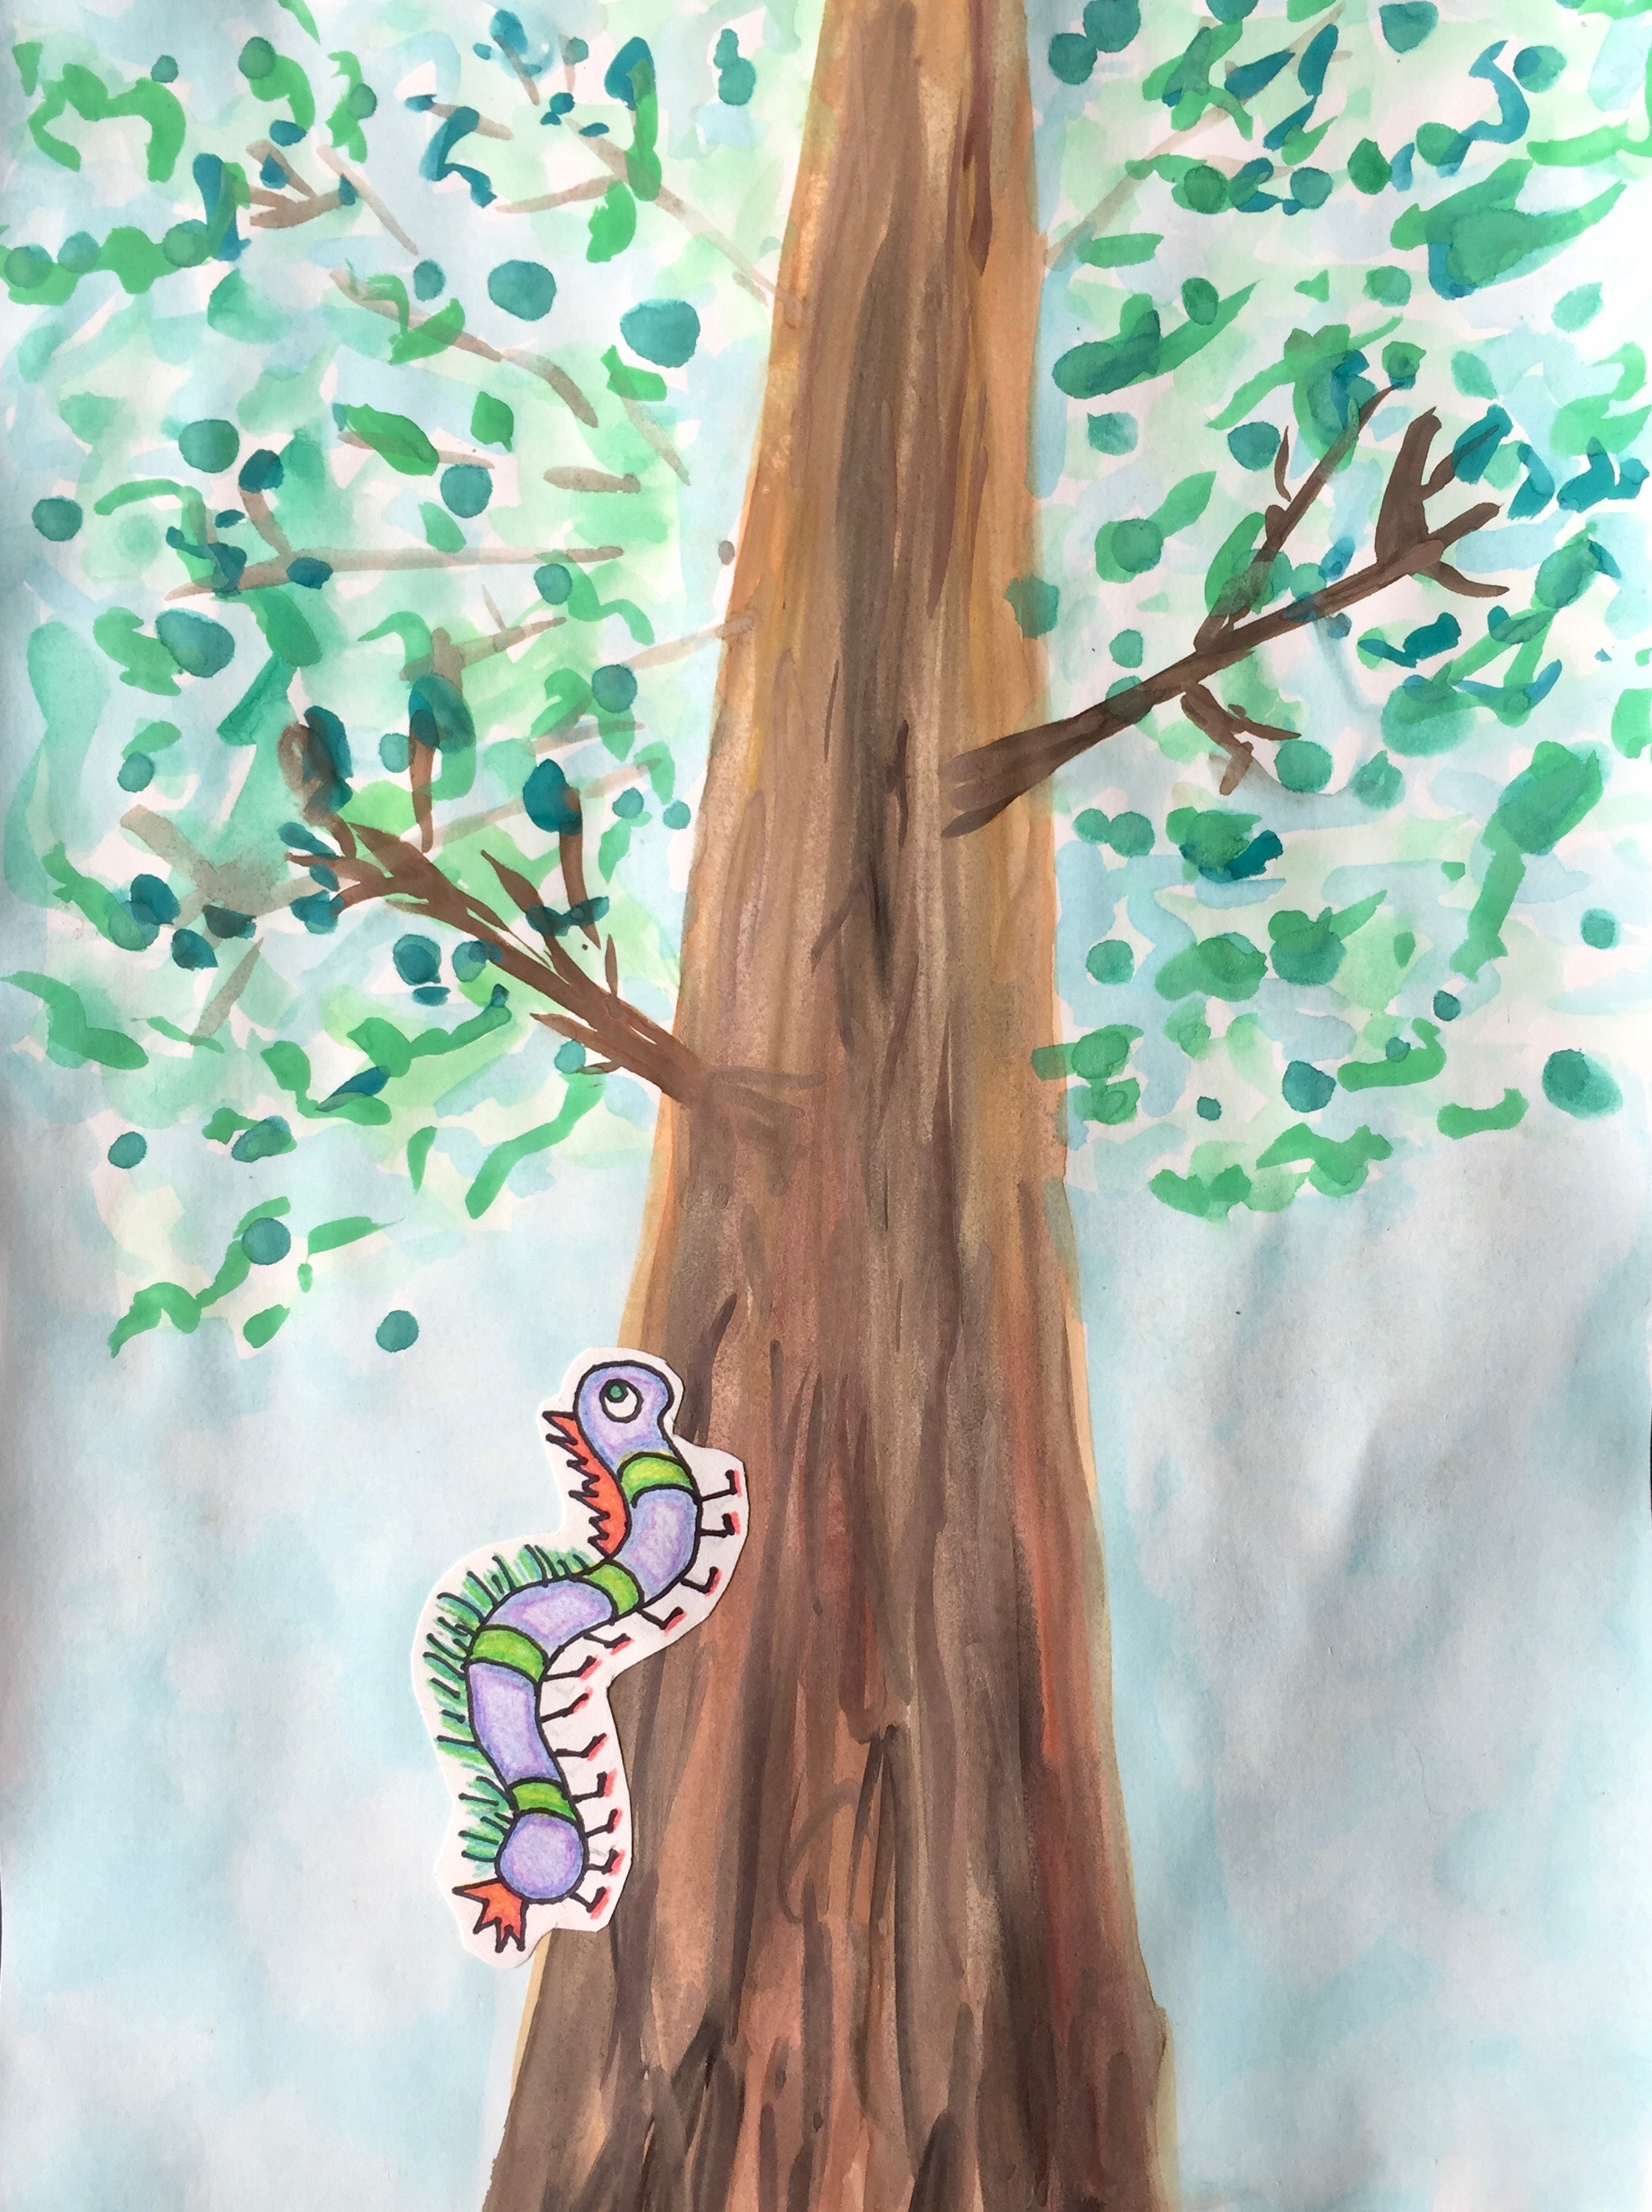 tree perspective with caterpillar.jpg